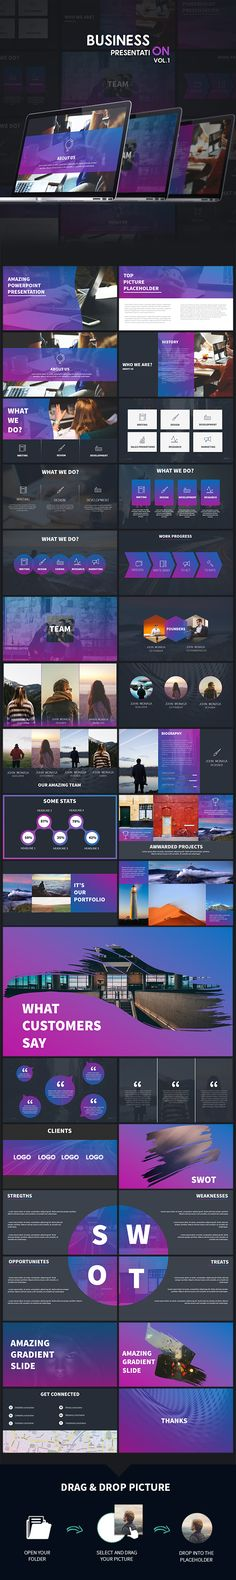 Business - Colorful Powerpoint Presentation - Business PowerPoint Templates